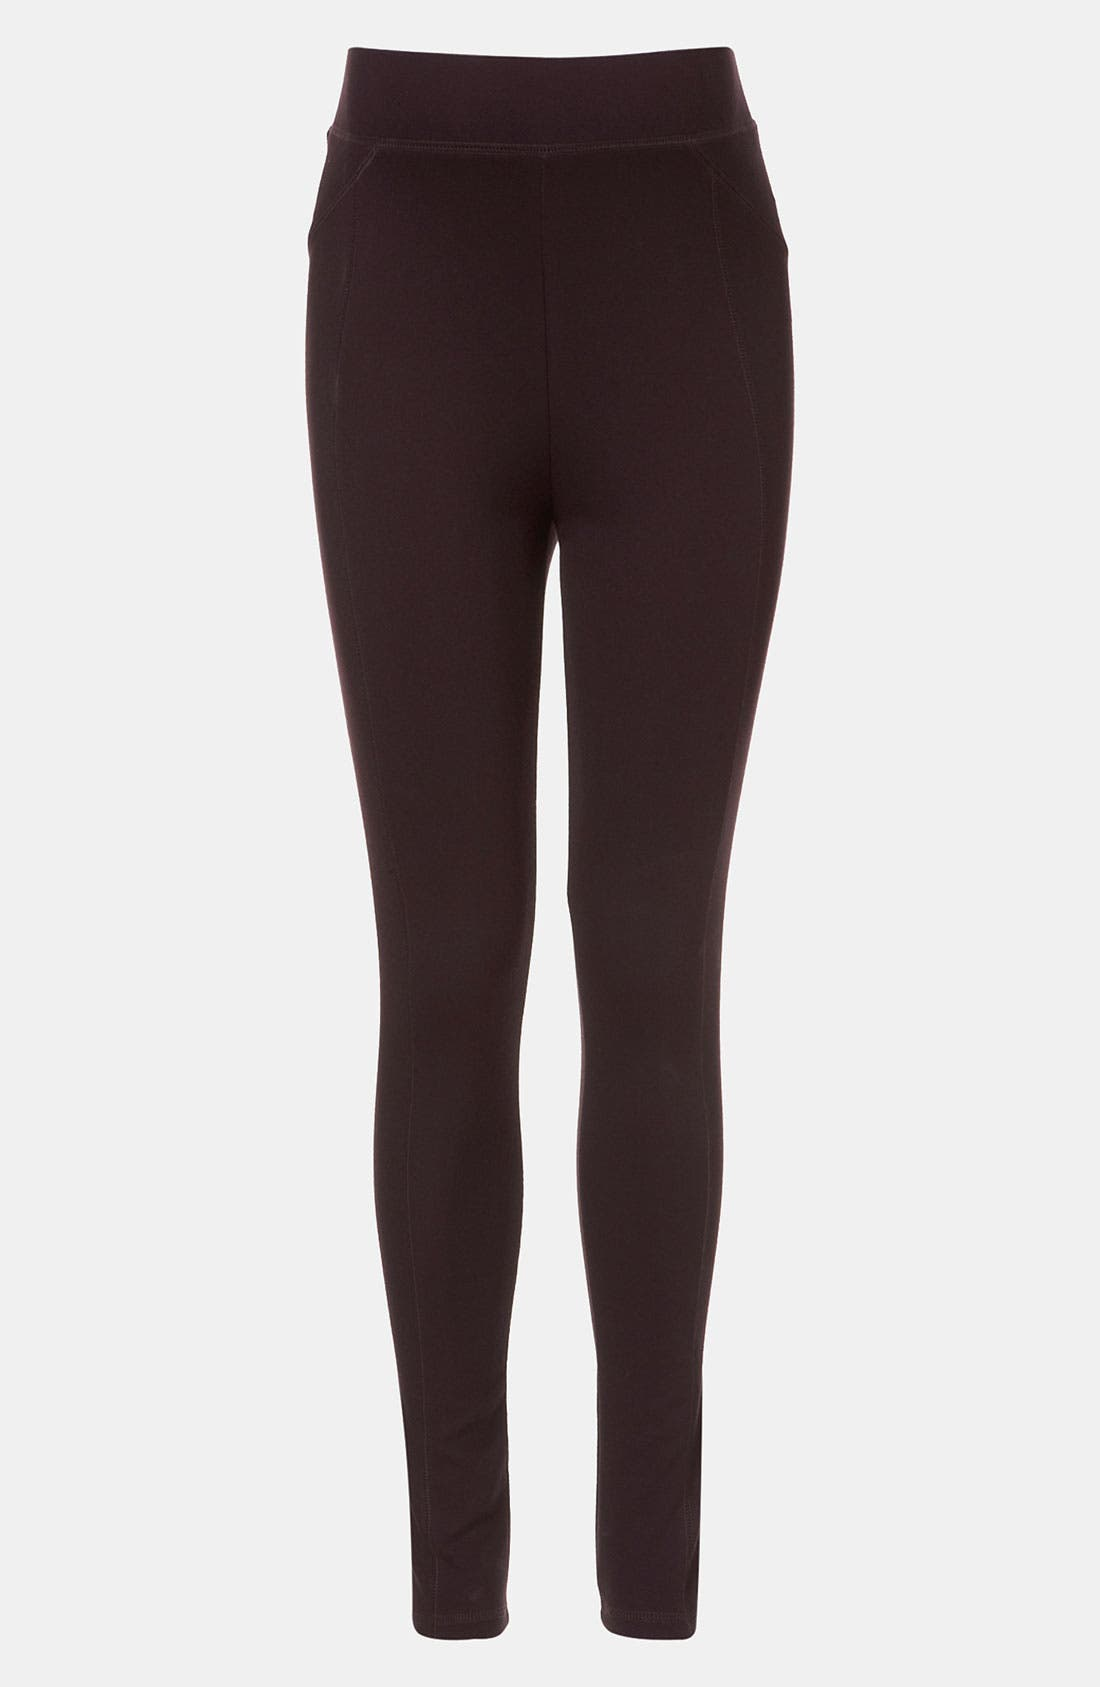 Main Image - Topshop Ponte Knit Maternity Leggings